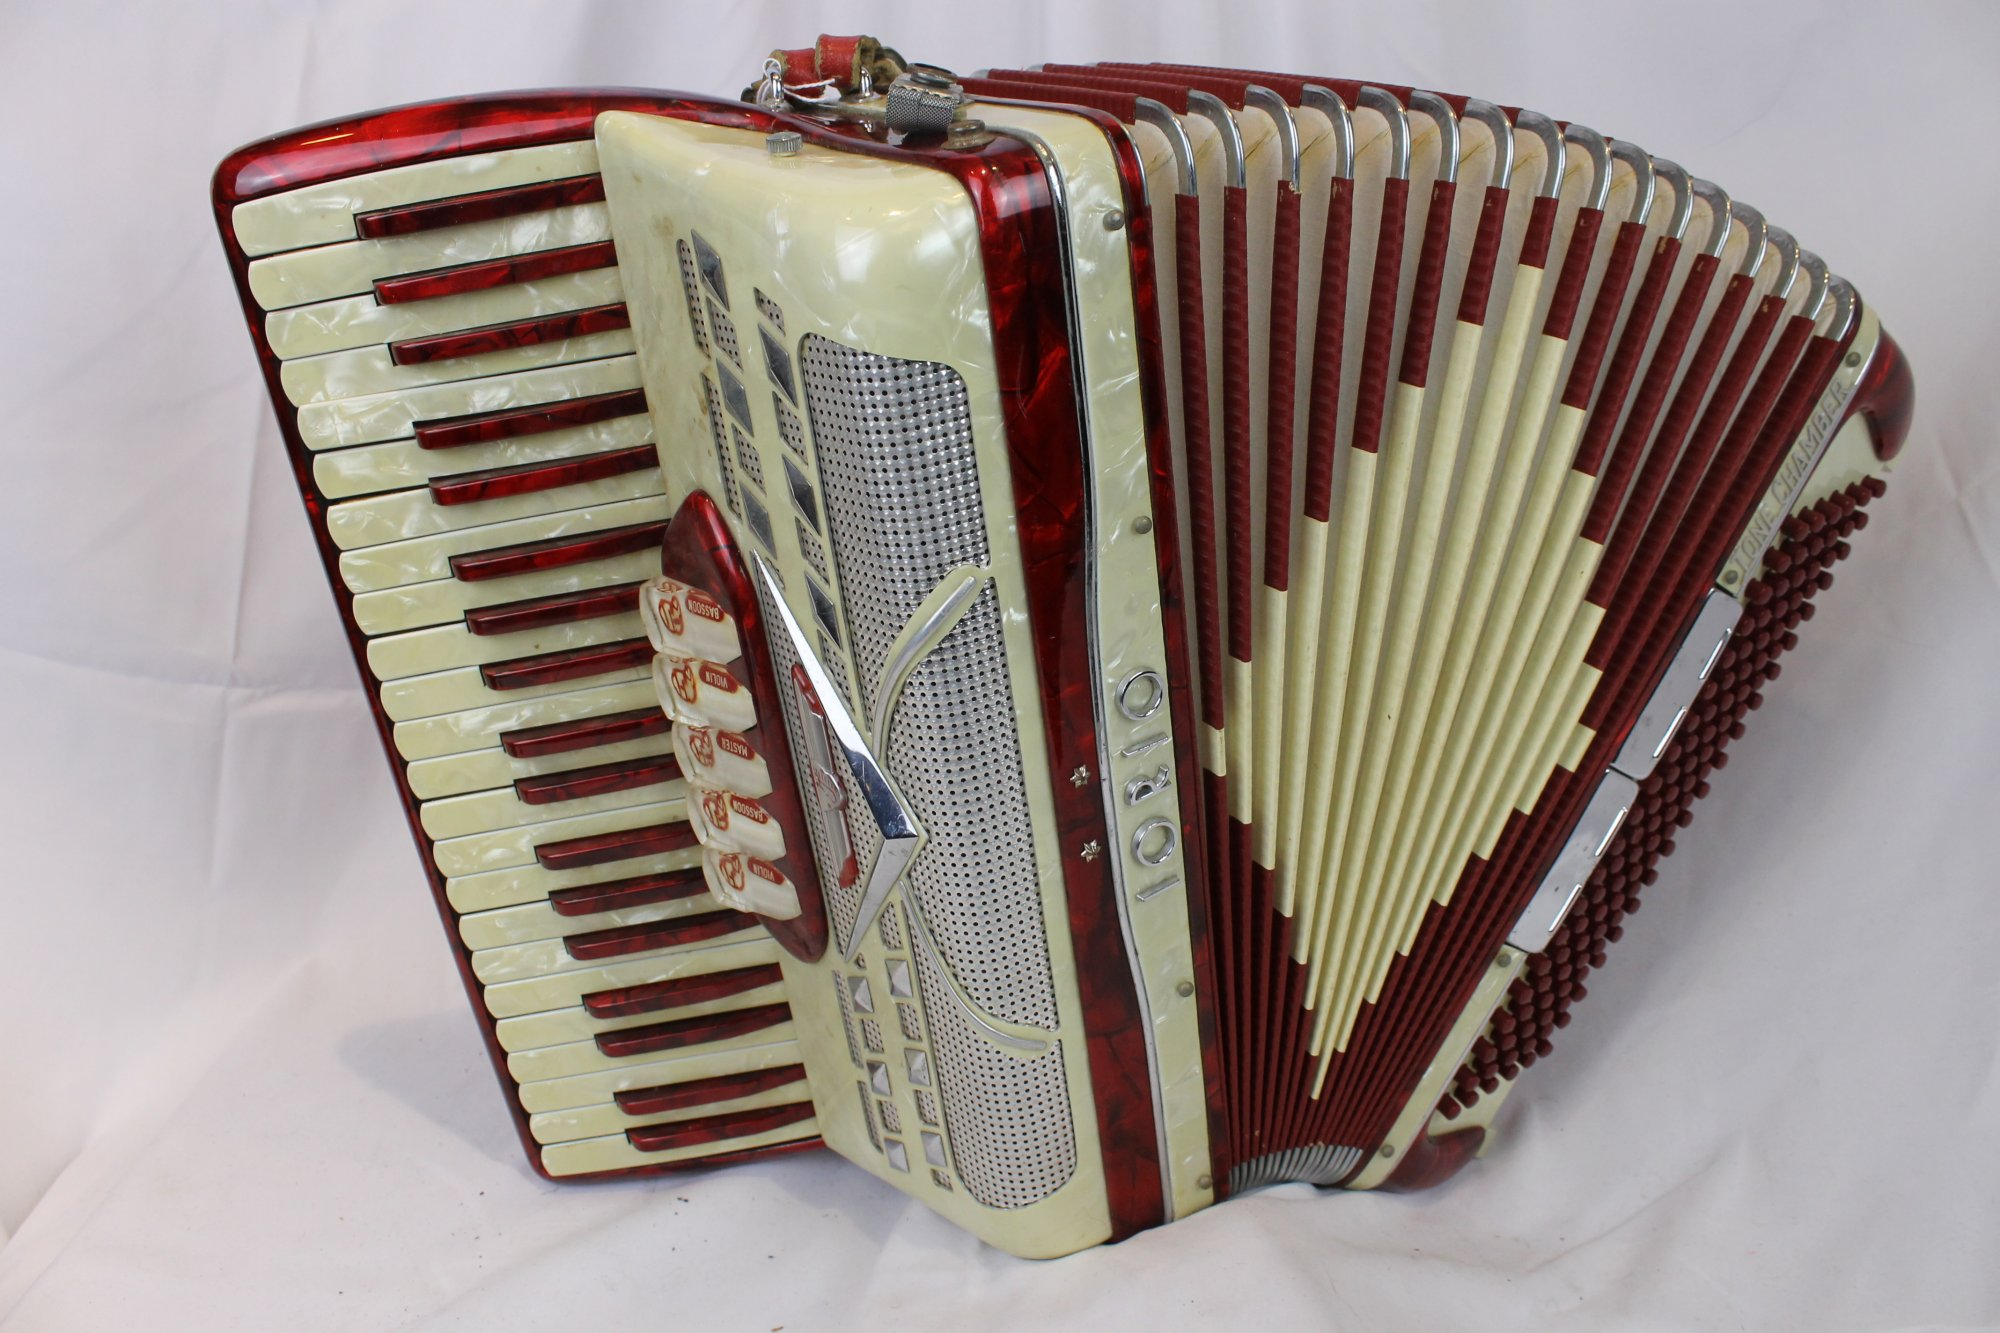 A very snazzy modern accordion